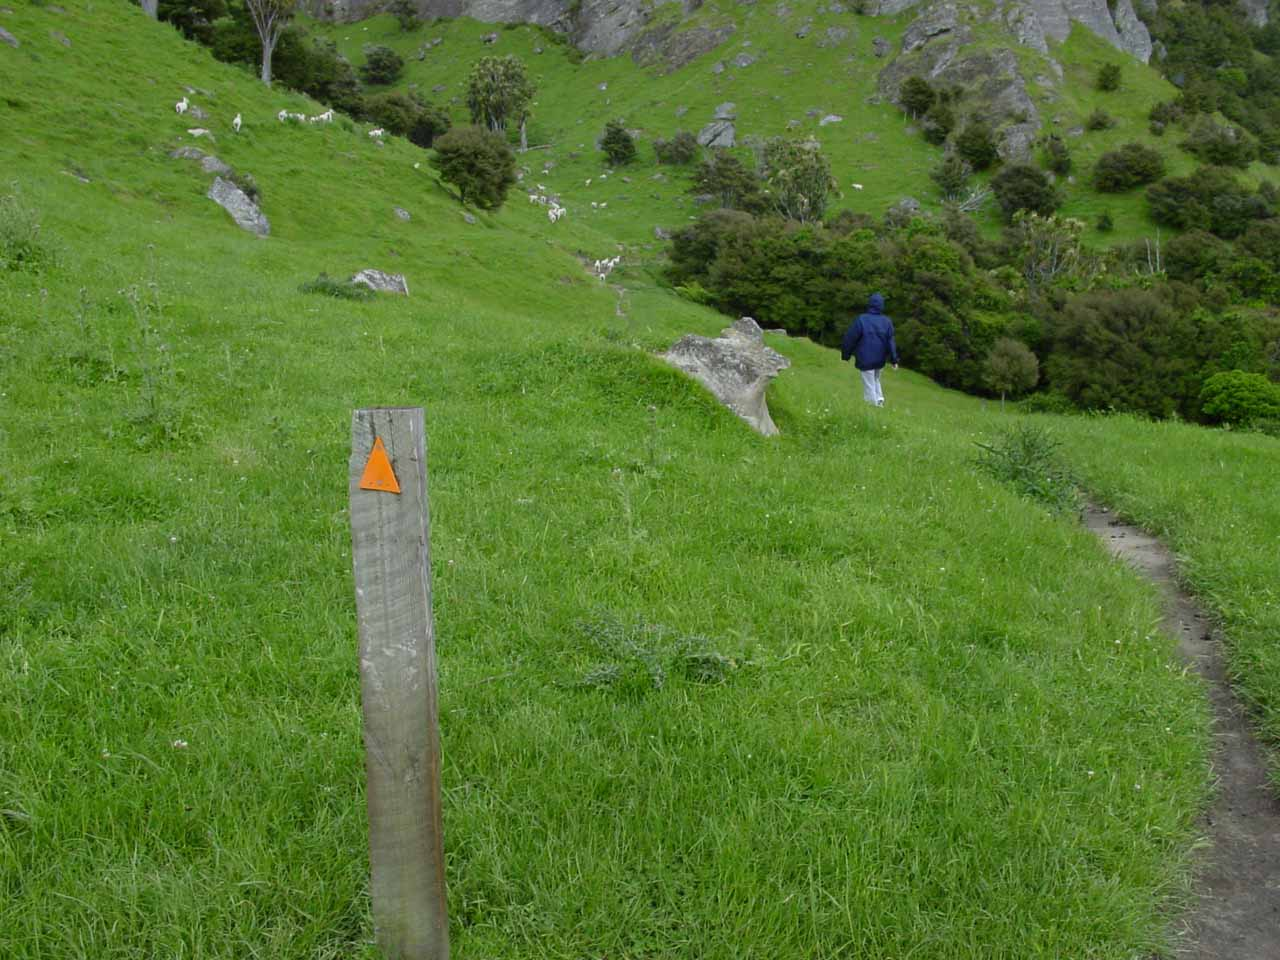 Julie following the poles guiding us through the paddock to the Boundary Stream Scenic Reserve